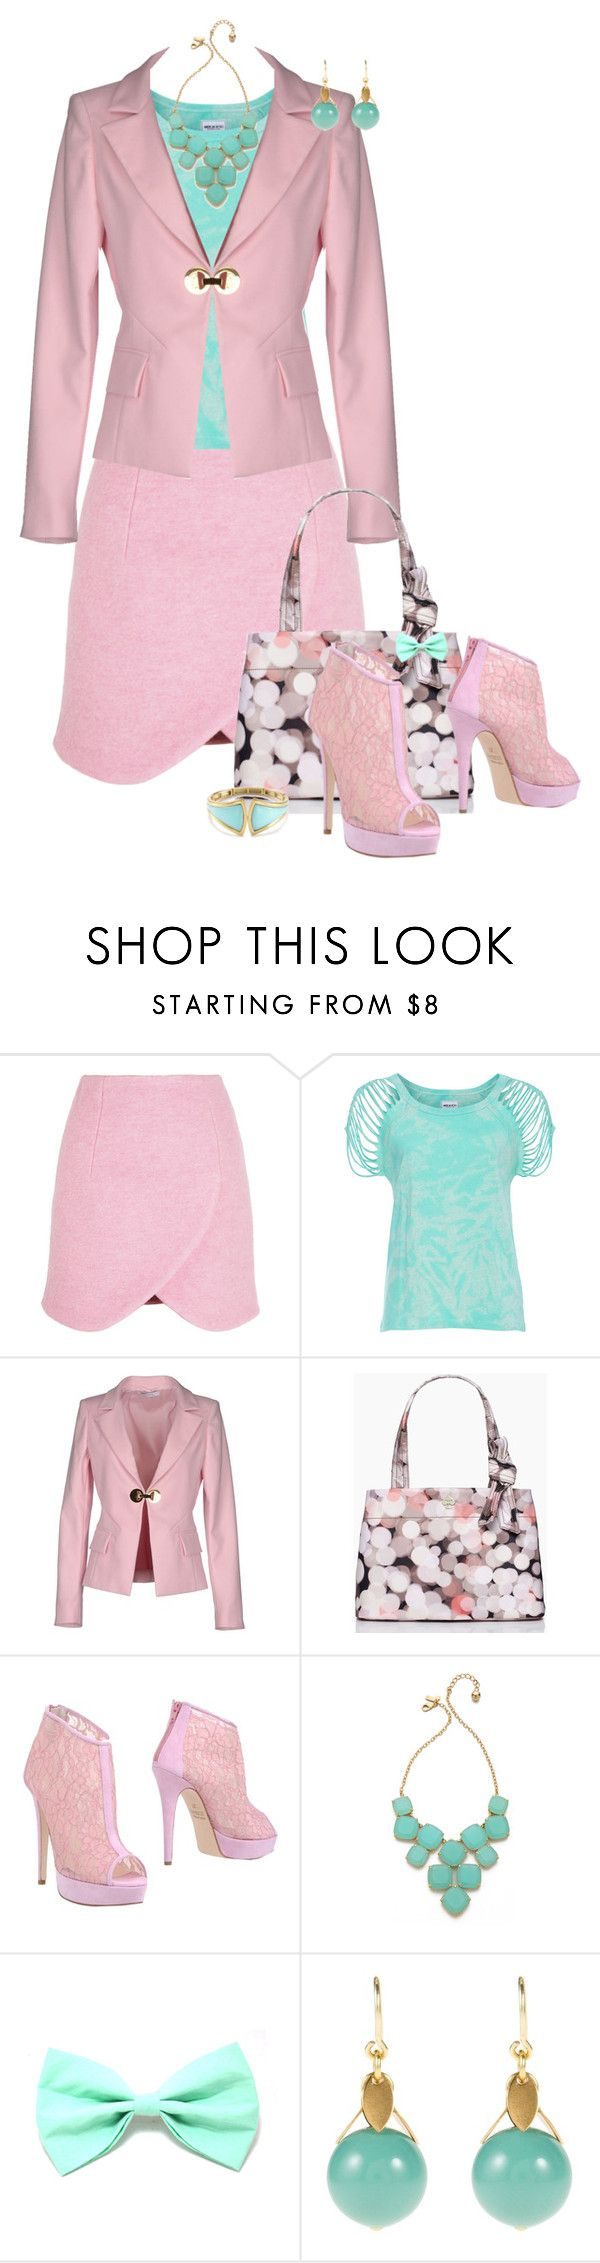 """""""Pink & Teal"""" by feelgood35 ❤ liked on Polyvore featuring Carven, American Retro, Versace, Kate Spade, Fiorangelo, TomShot, Elie Tahari, Pink, teal and turquoise"""